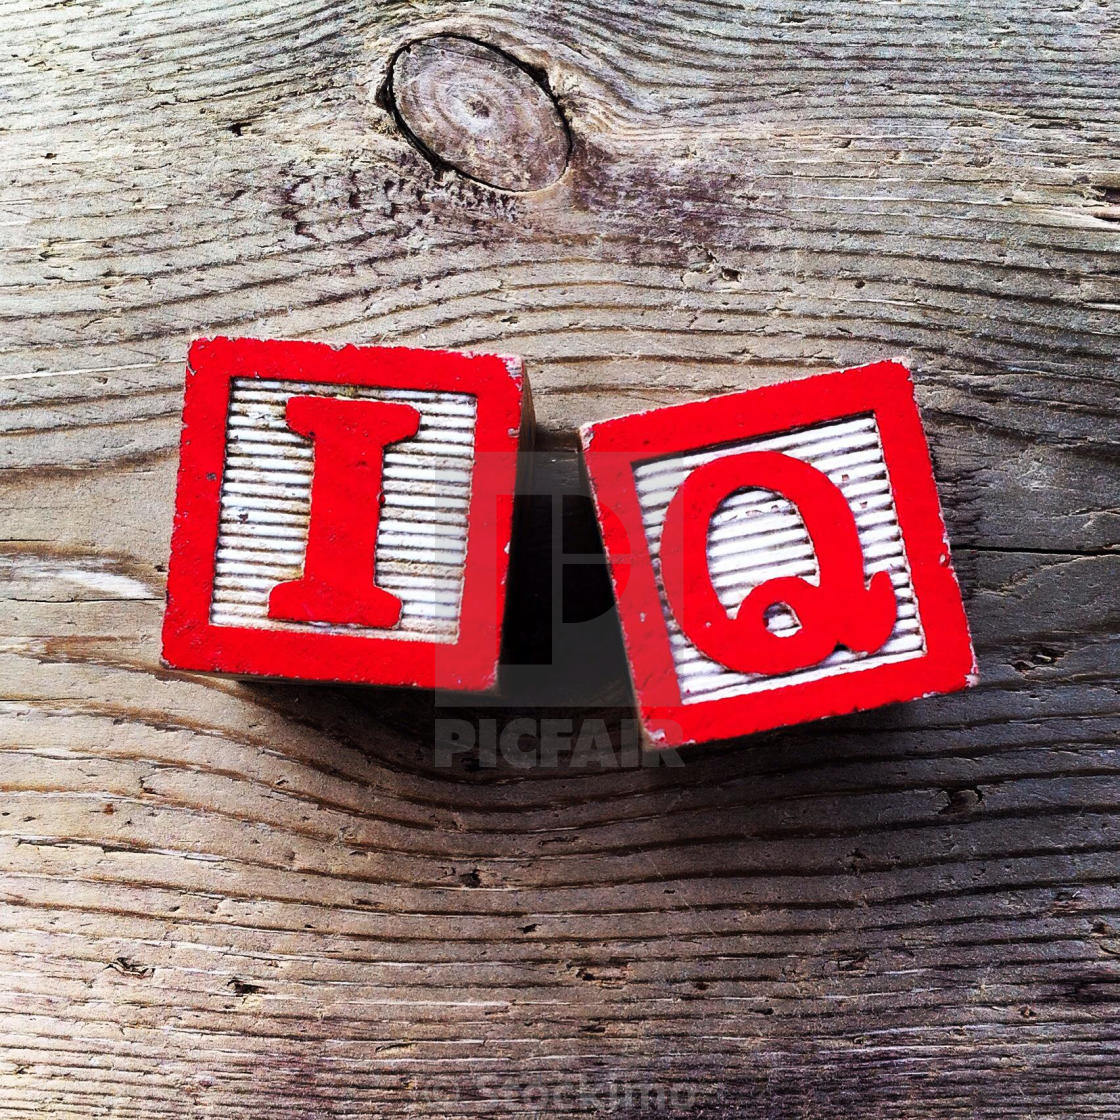 Its A Photo Of Two Wood Cubes Toy With Letters That Form The Word